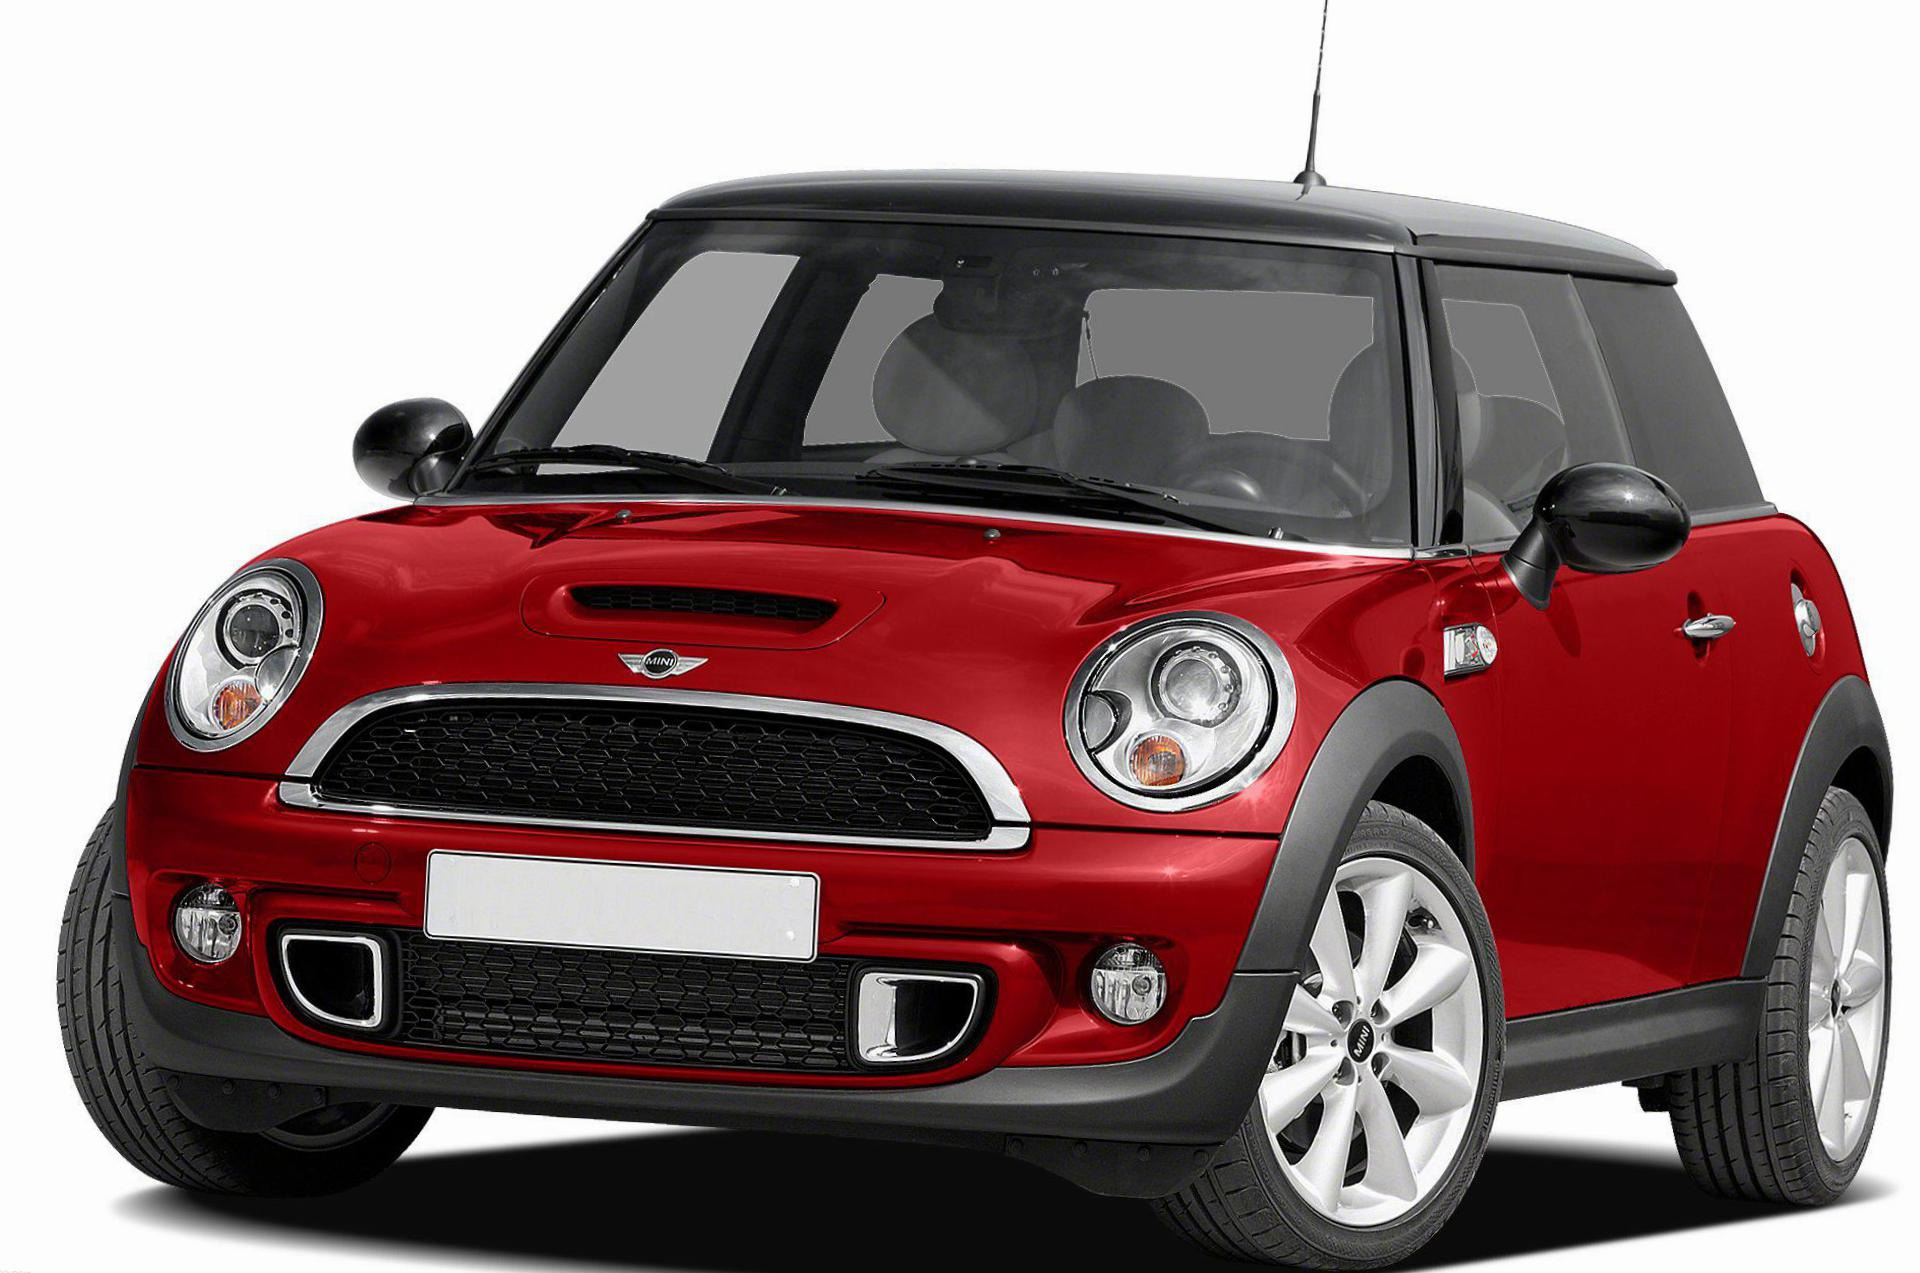 MINI Cooper S Coupe how mach 2013